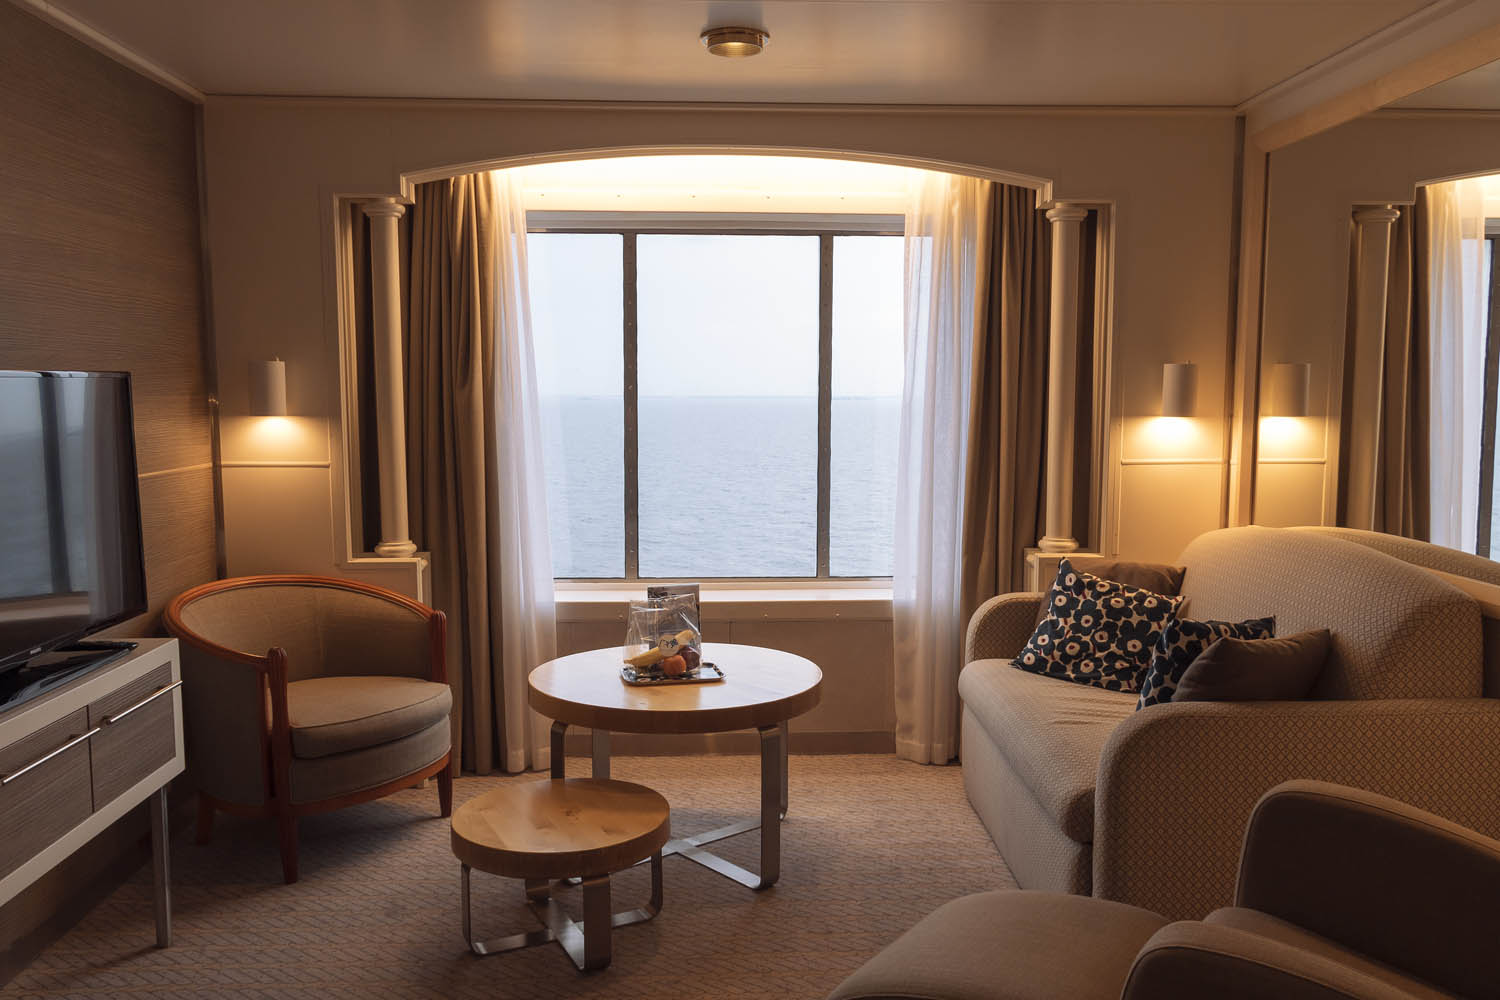 The Commodore Suite has huge windows and it feels like you are in a hotel with a beautiful changing sea view.